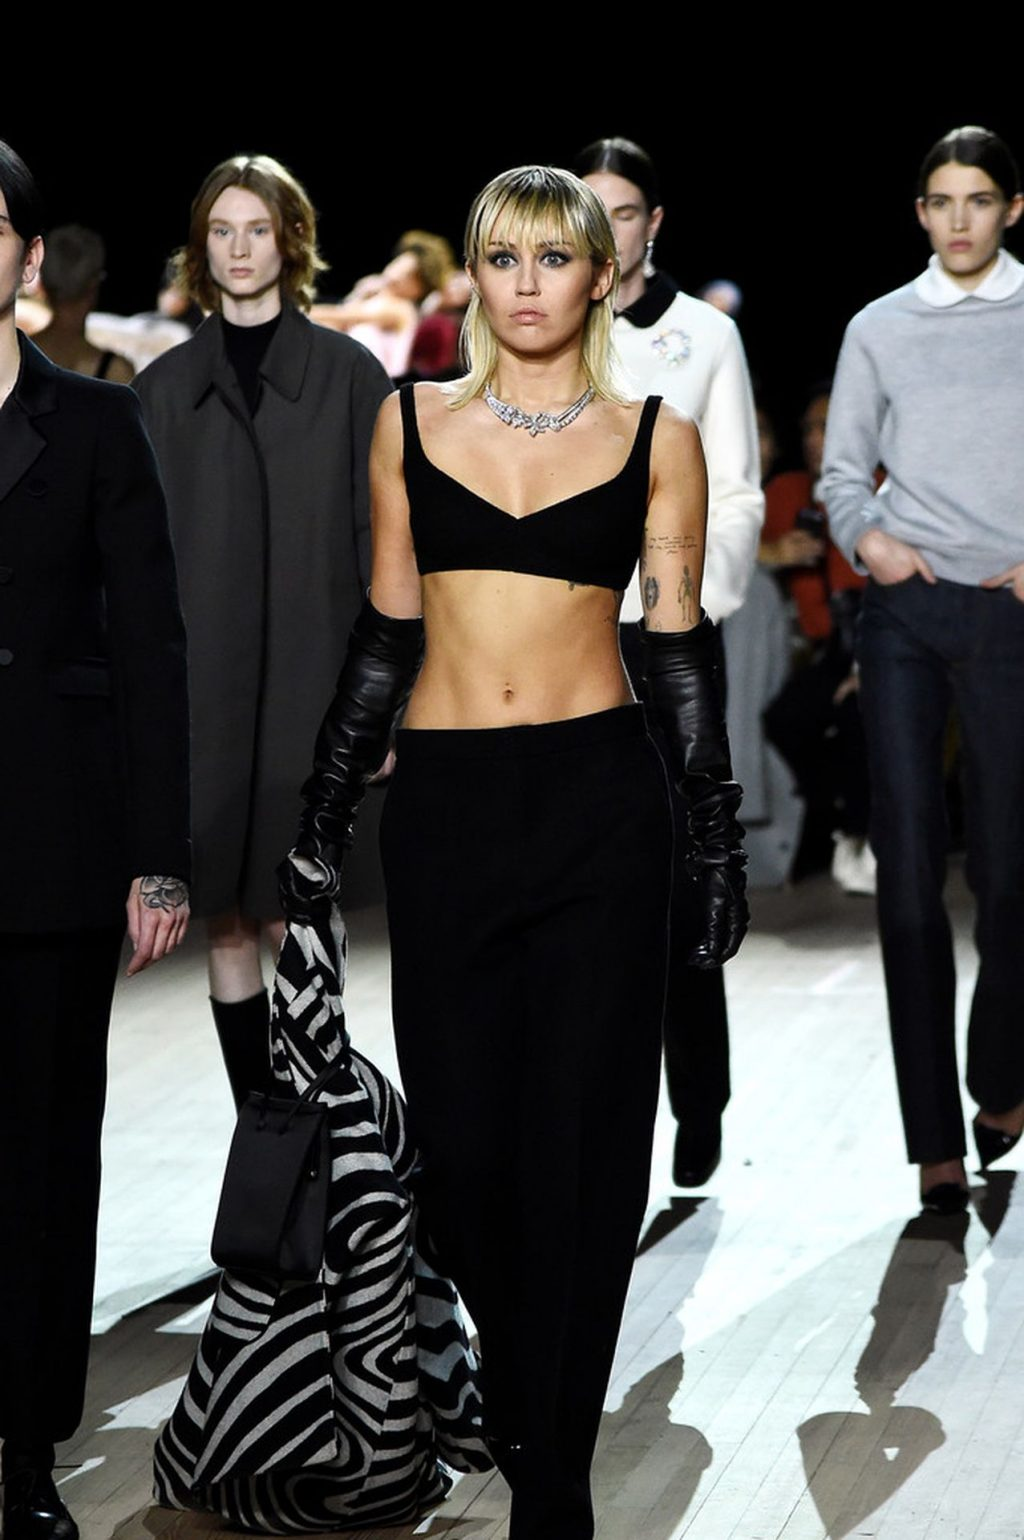 Miley Cyrus Sexy The Fappening Blog 6 4 1024x1540 - Miley Cyrus Walks the Runway at the Marc Jacobs Show (22 Photos + GIF & Video)